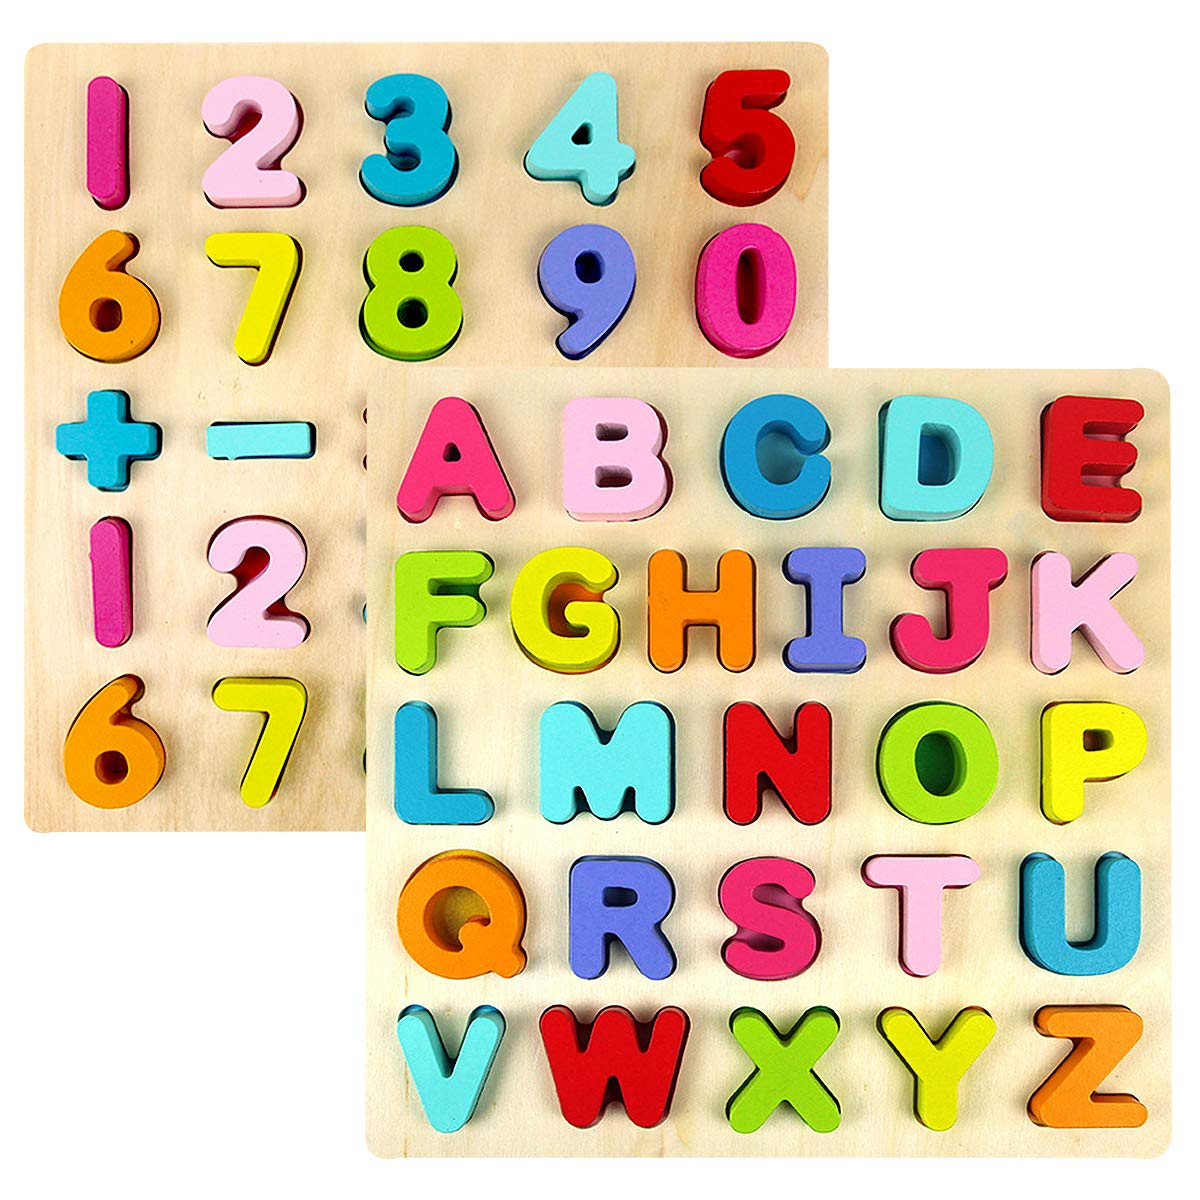 Kids Wooden Alphabet Number Puzzle Set, Alphabet ABC Numbers 123 Learning Puzzles Board, Preschool Educational Puzzles Montessori Toy Gift for 1 2 3 Year Olds Toddlers Baby Girls Boys by Blppldyci